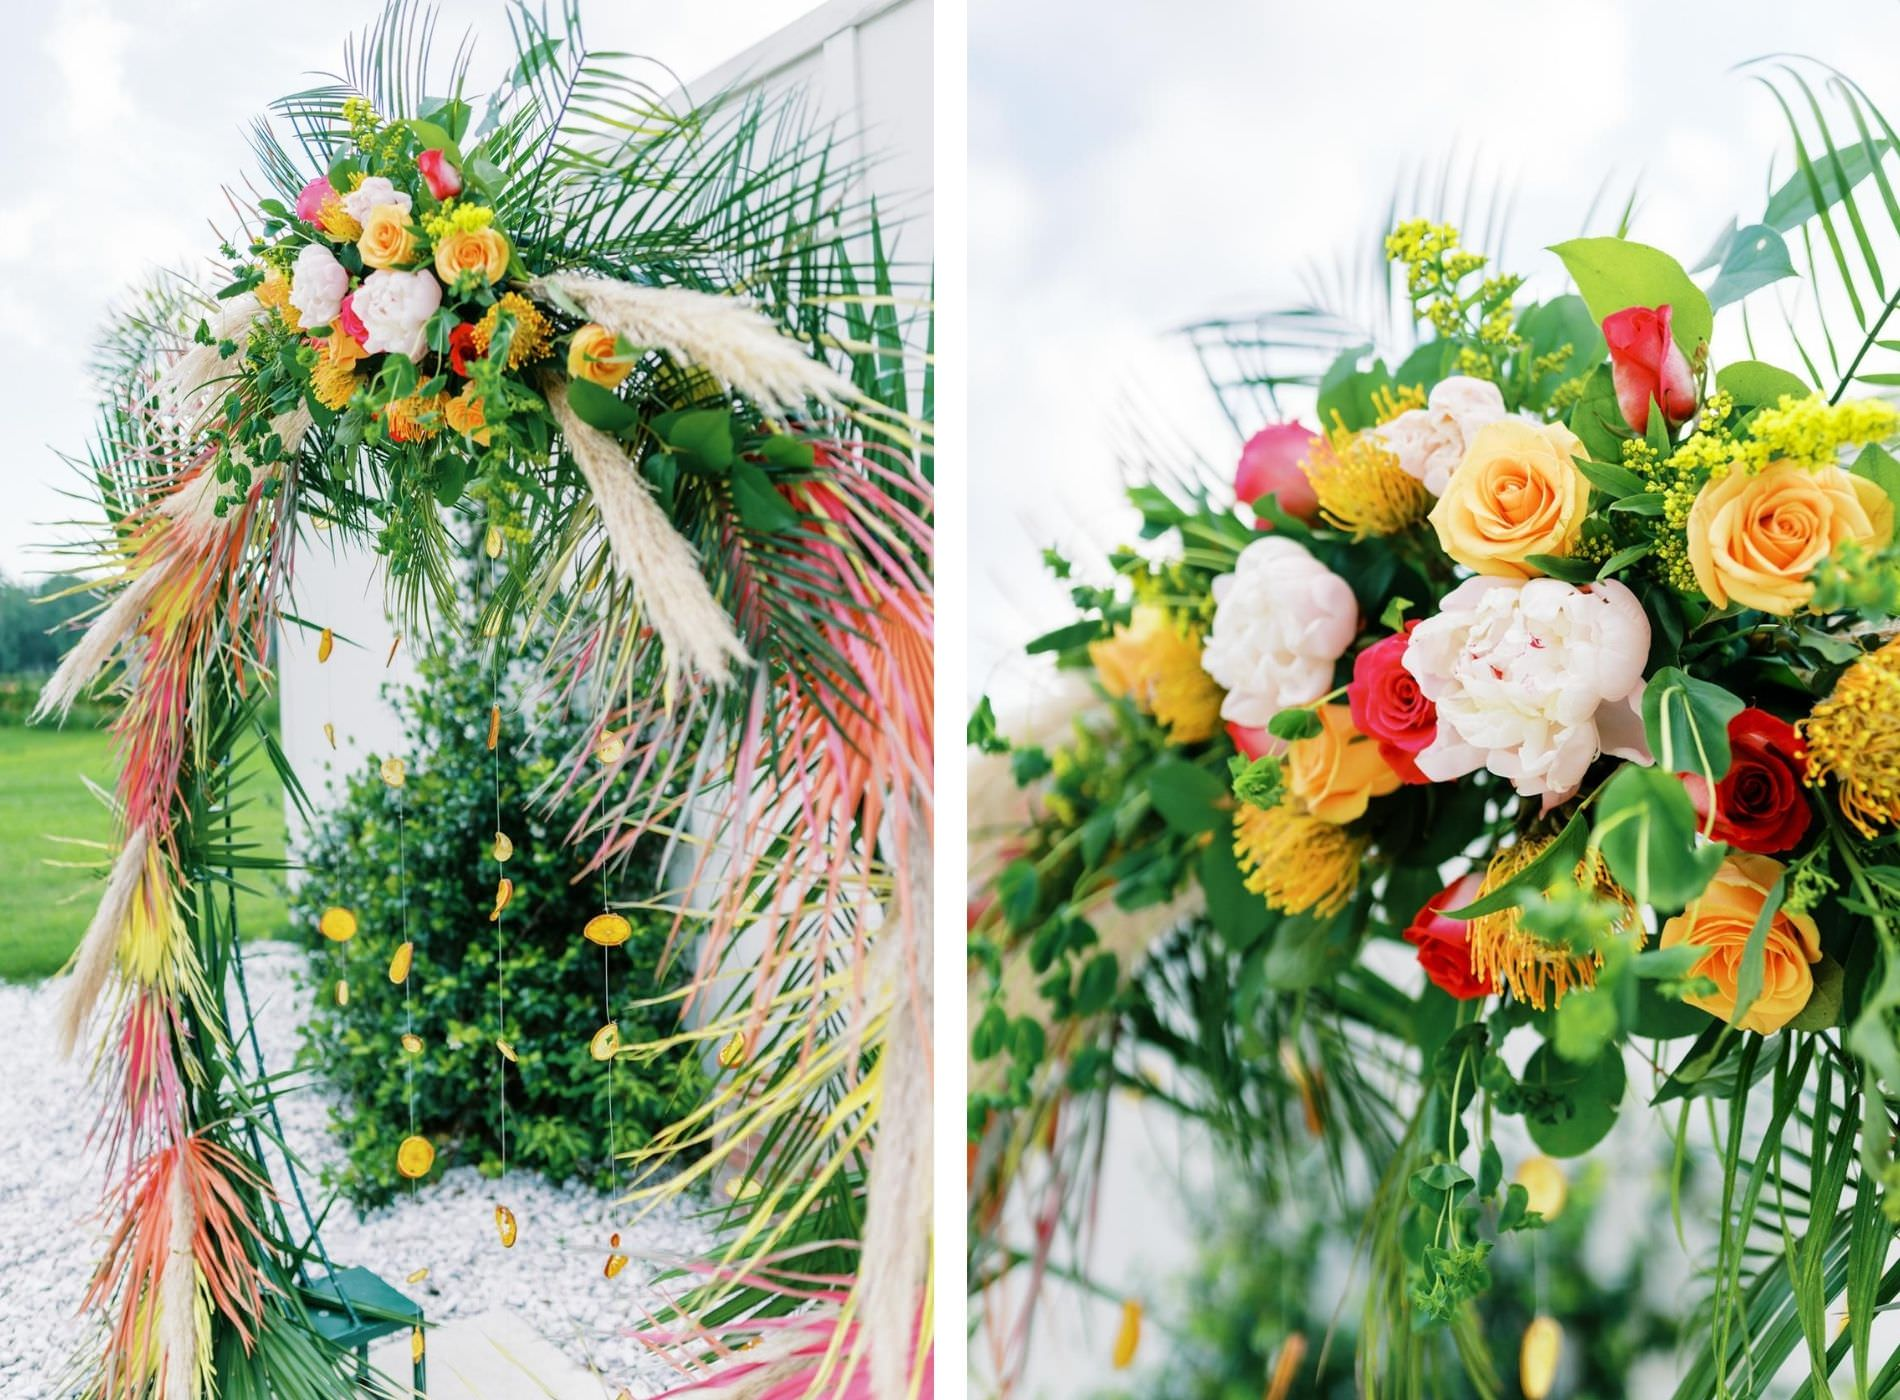 Tropical Florida Citrus Wedding Inspiration | Orange and Yellow Painted Palm Frond Leaf Round Moon Arch Ceremony Backdrop with Pampas Grass and Hanging Orange Slices | Bright Colorful Floral Arrangement with Orange and Pink Roses and Yellow Pincushion Protea